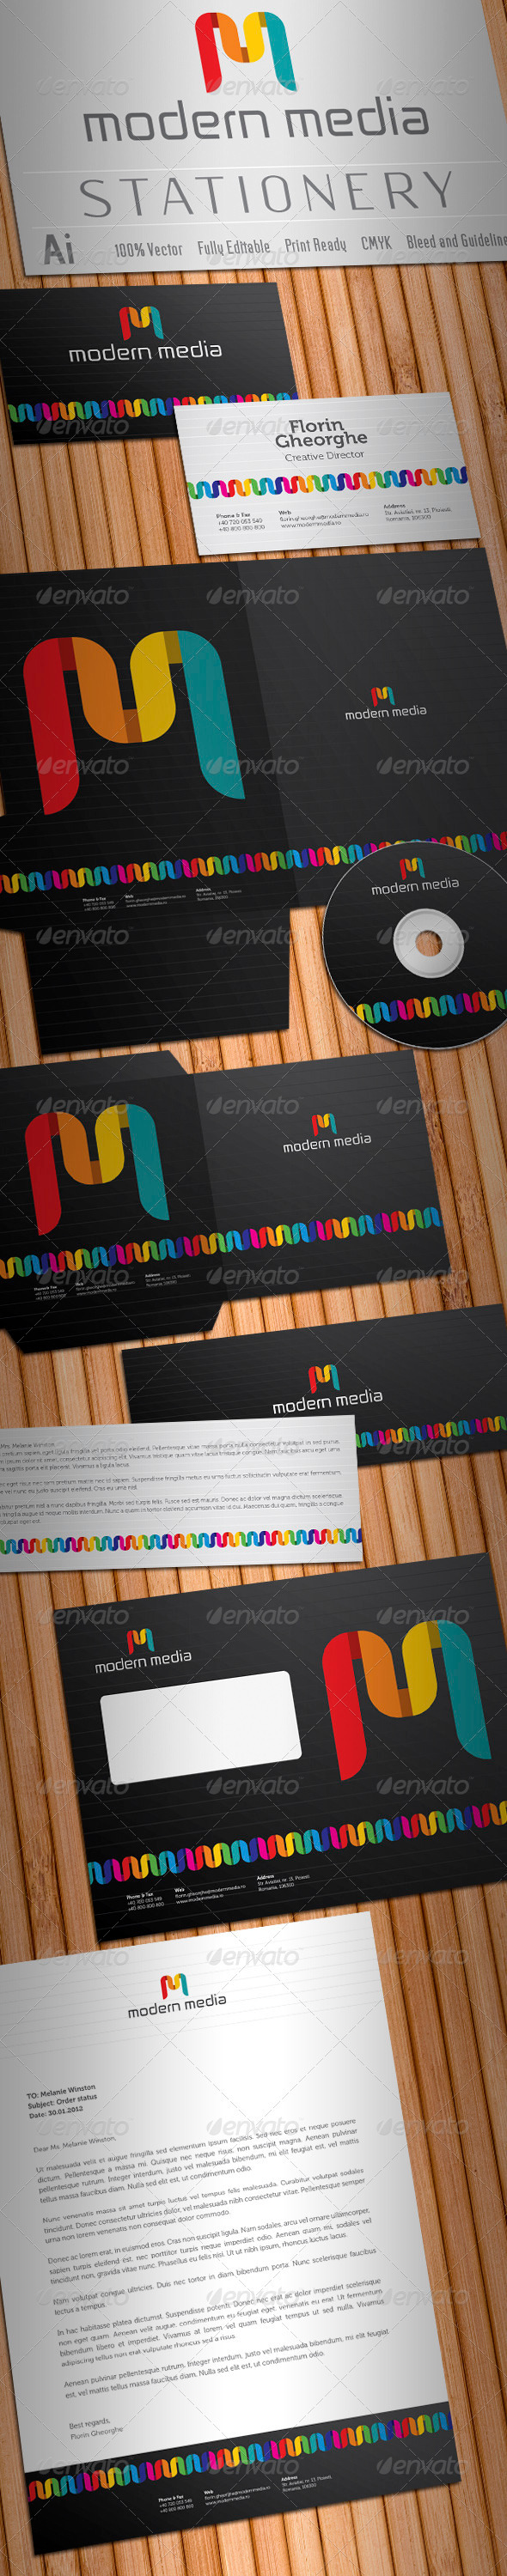 Modern Media Stationery V2 - Stationery Print Templates